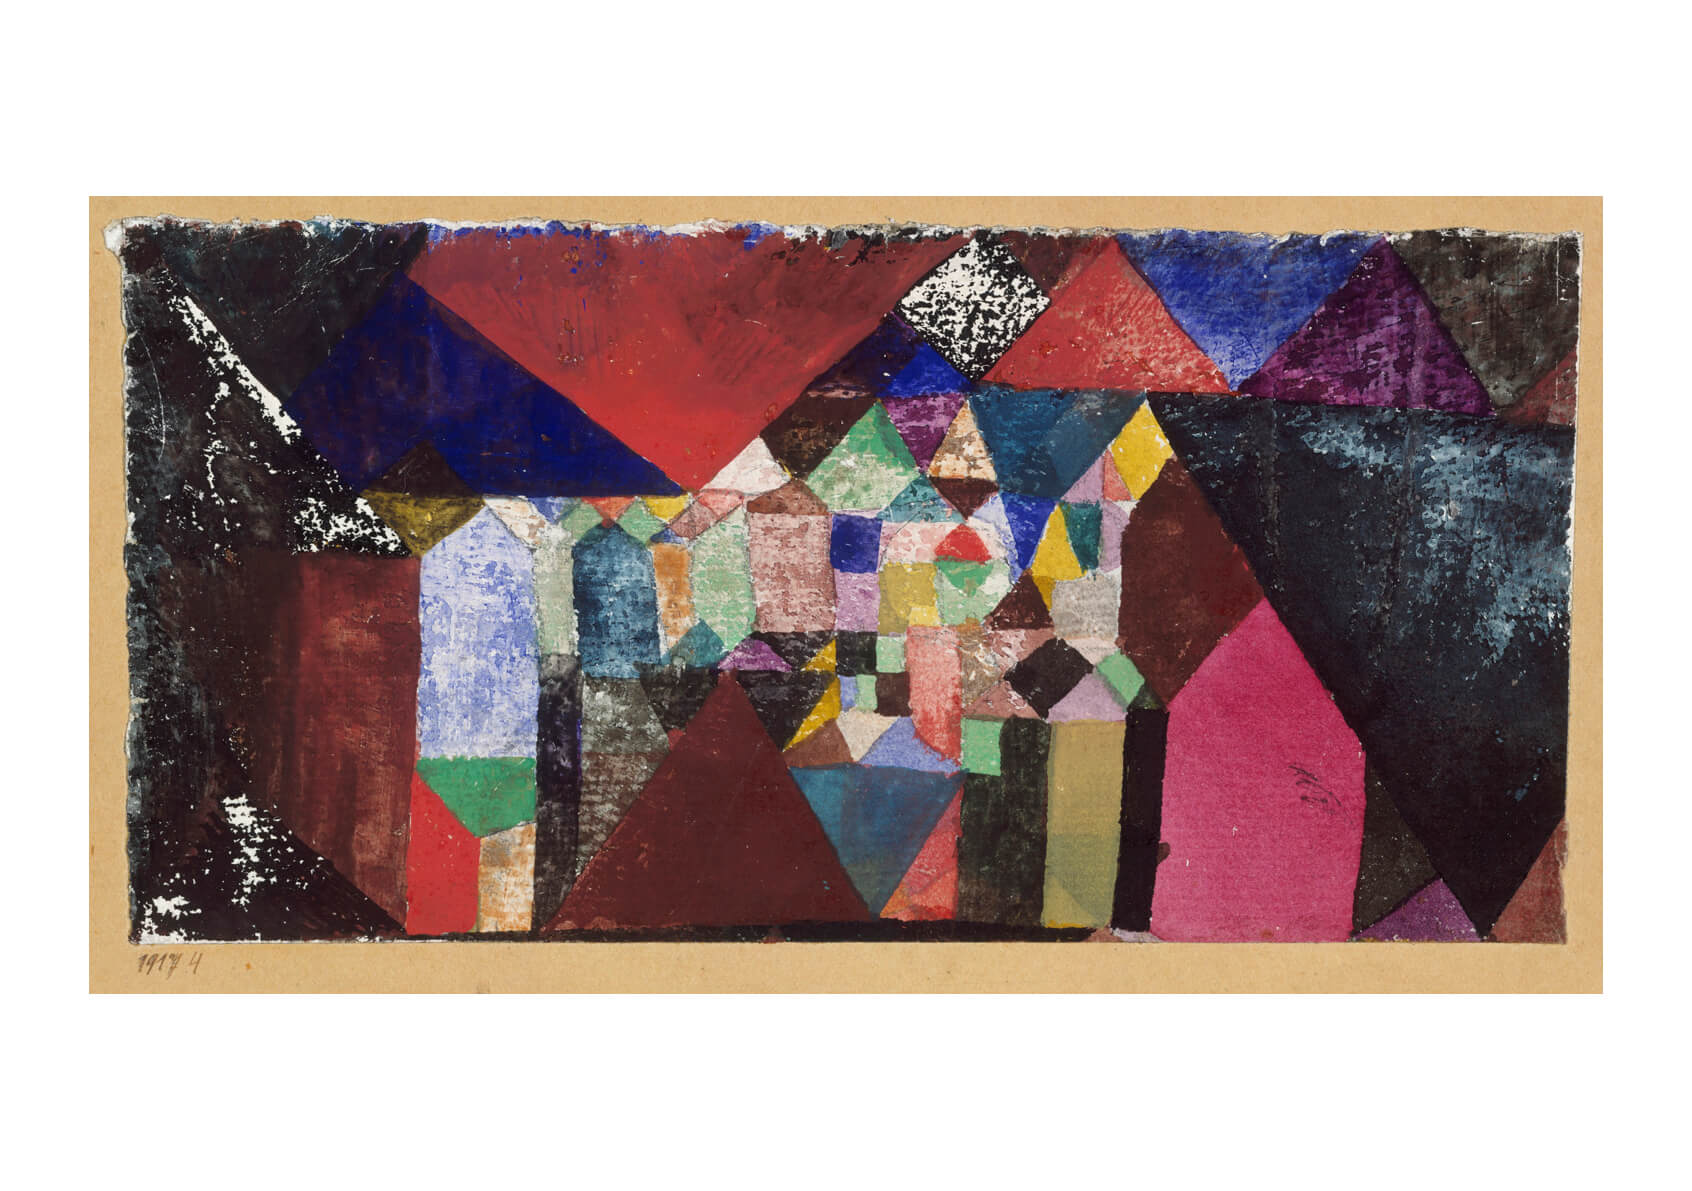 Paul Klee - Municipal Jewel